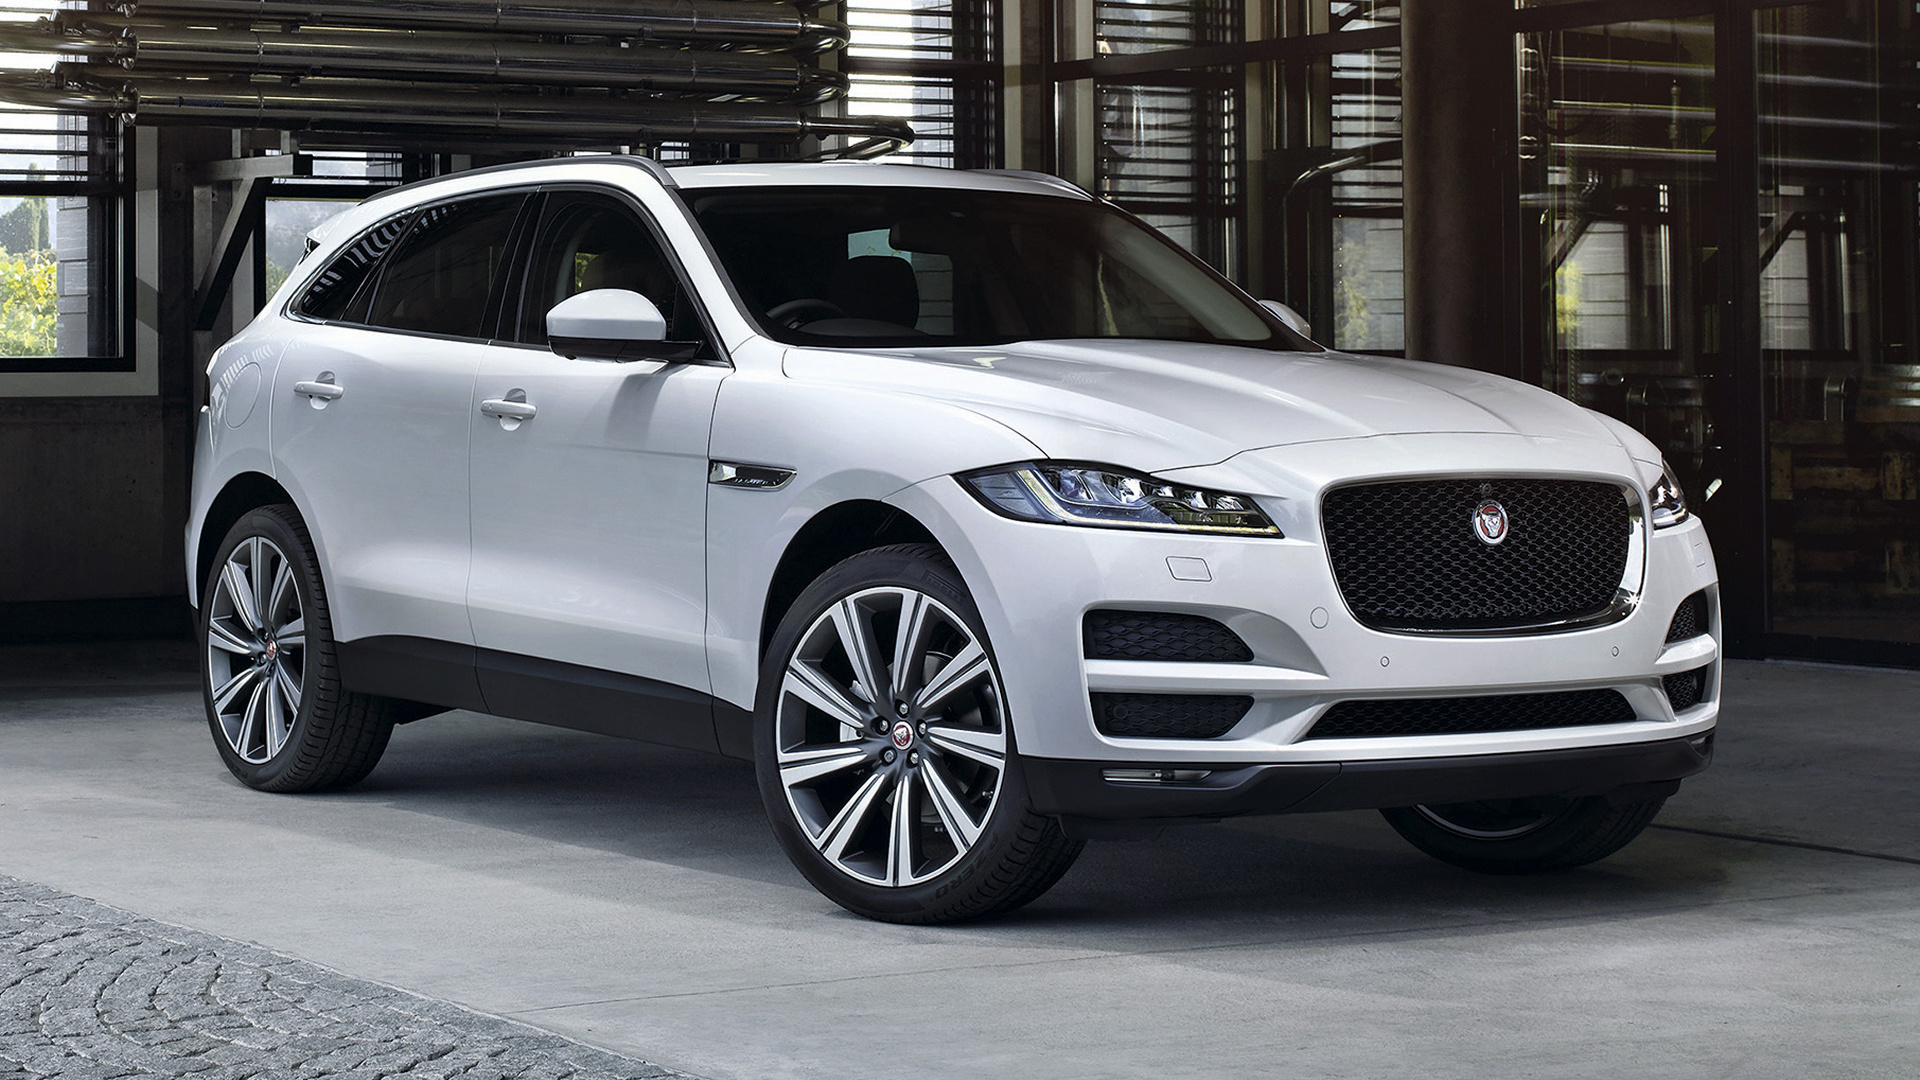 2016 jaguar fpace uk wallpapers and hd images car pixel